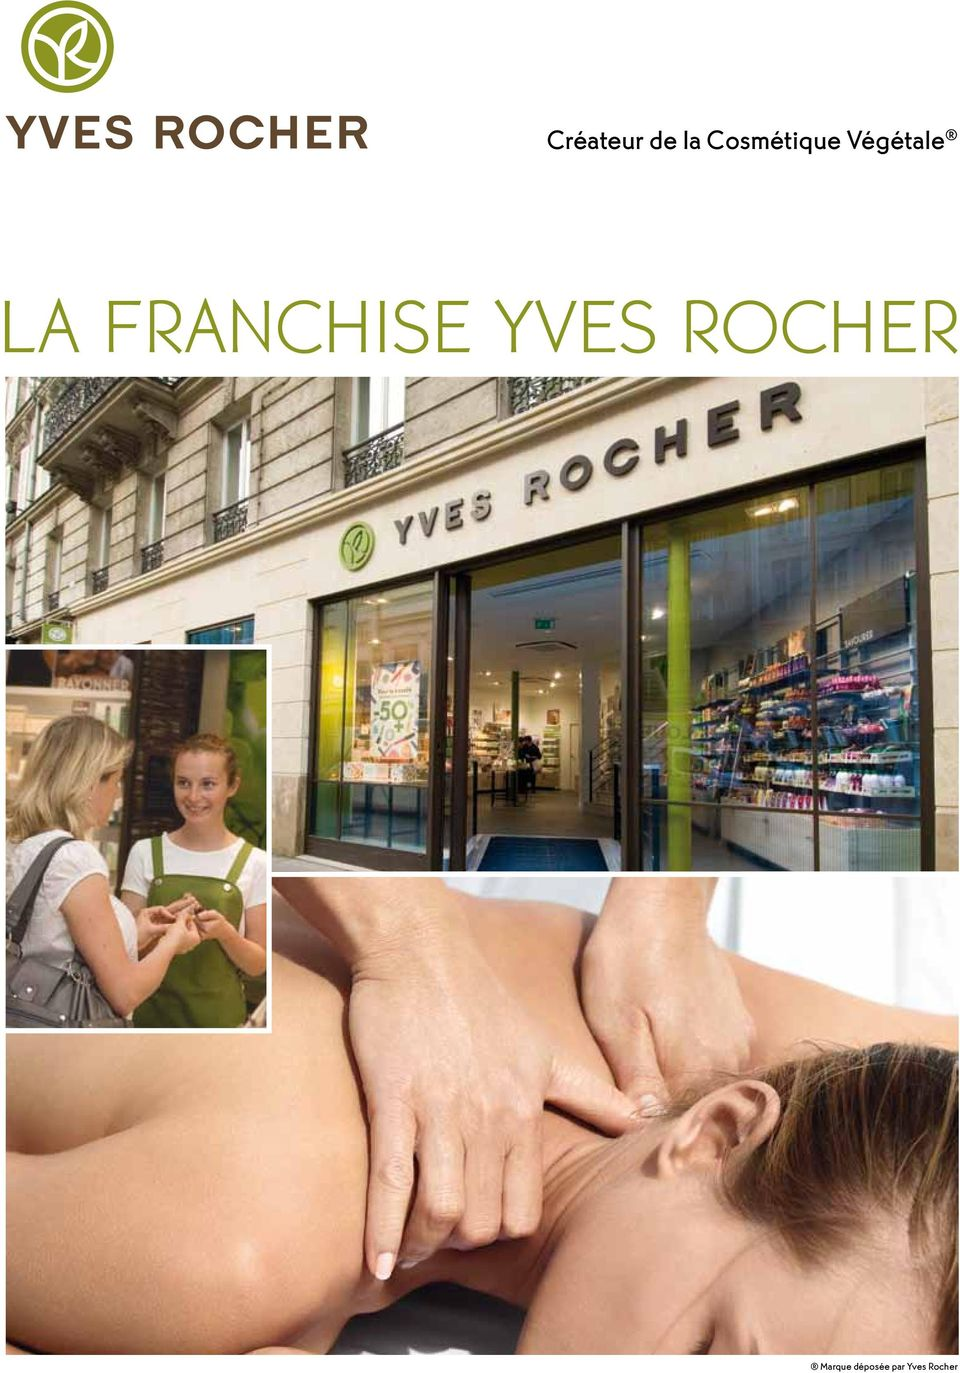 FRANCHISE YVES ROCHER